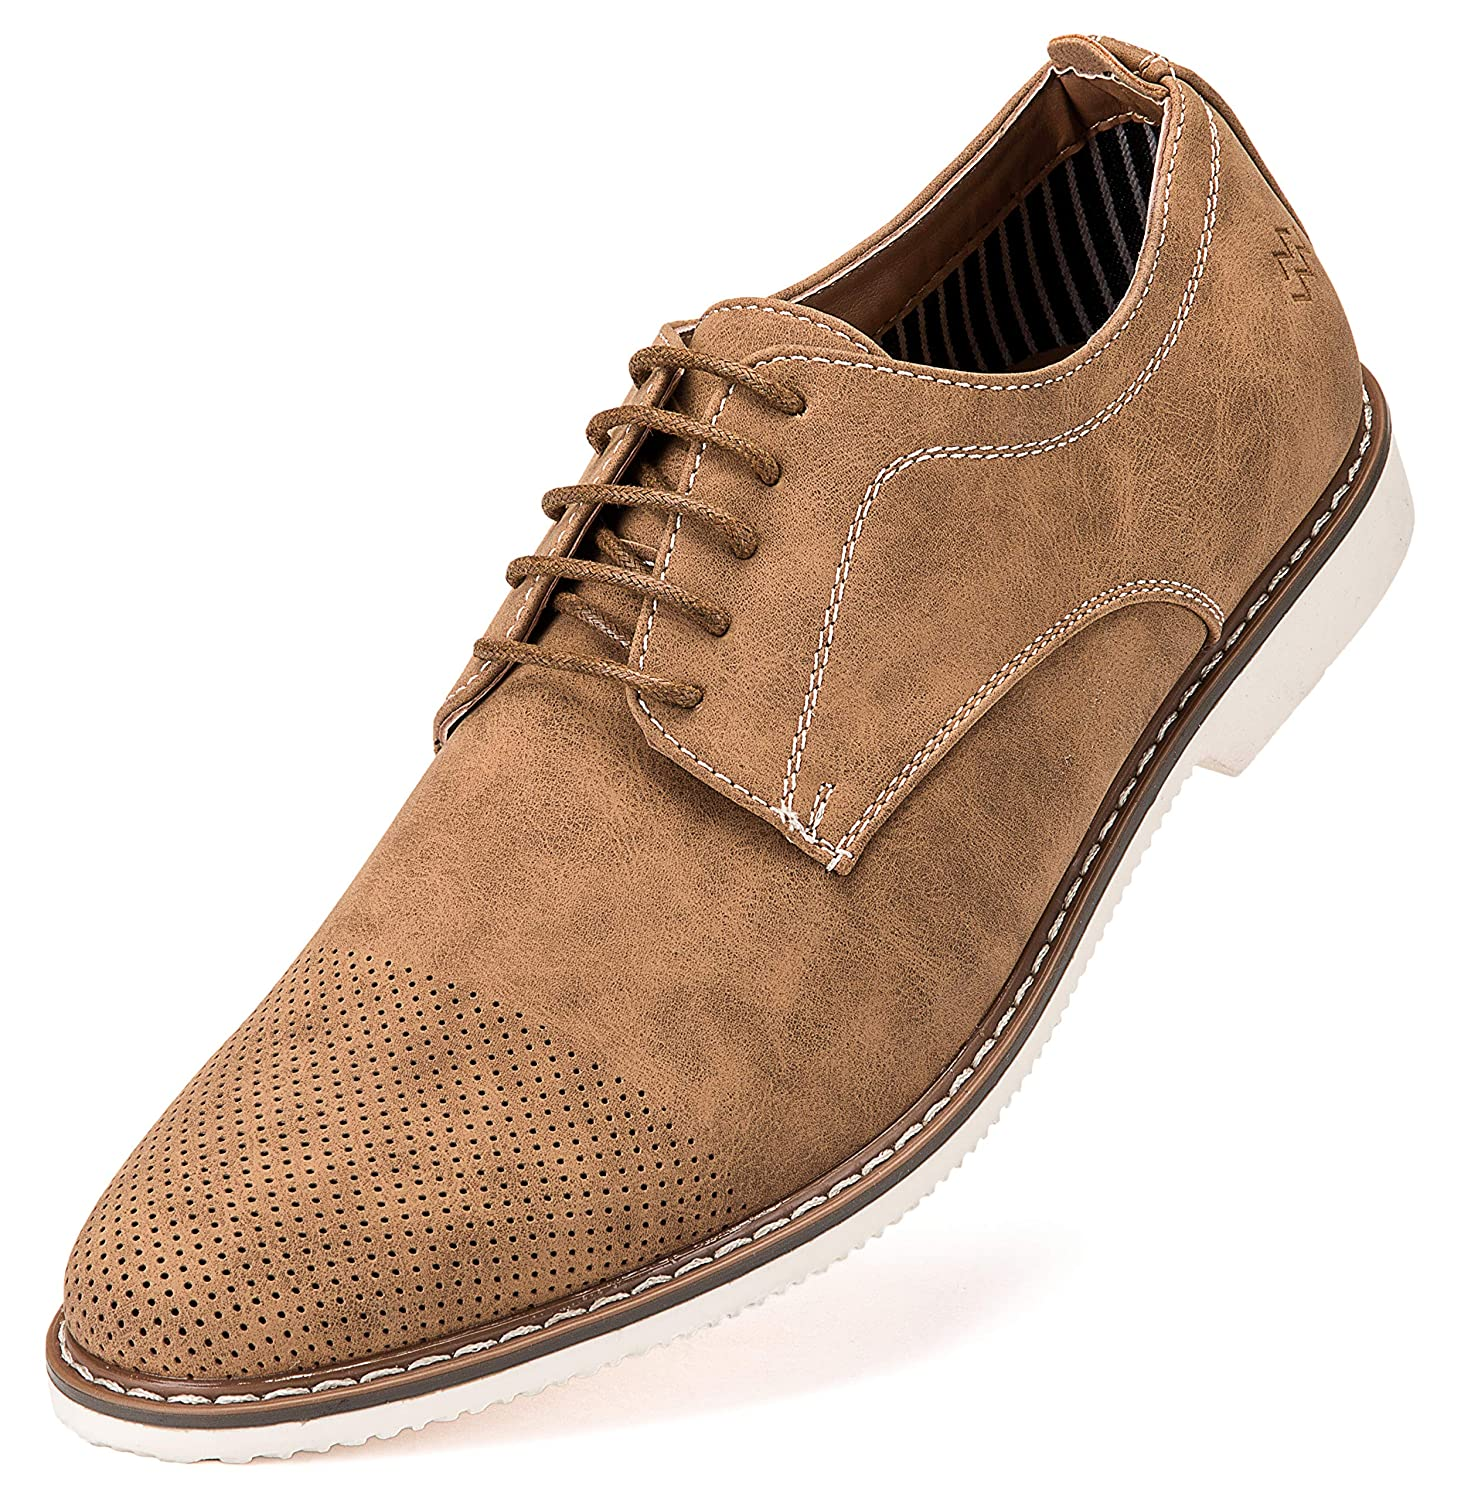 05331c79a92f Marino Avenue Mens Casual Shoes - Suede Business Dress Shoes for Men